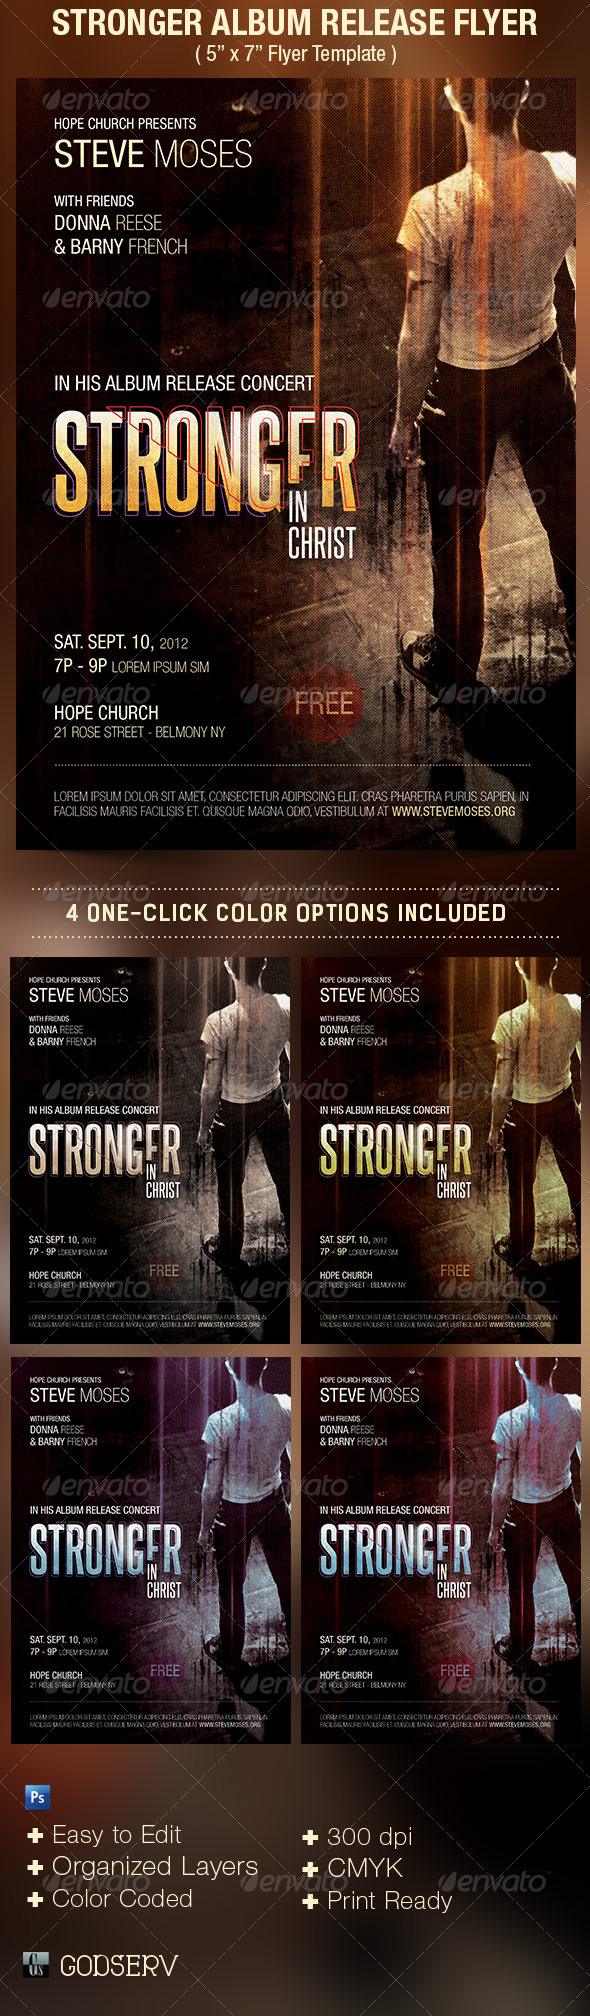 GraphicRiver Stronger Album Release Flyer Template 5135776